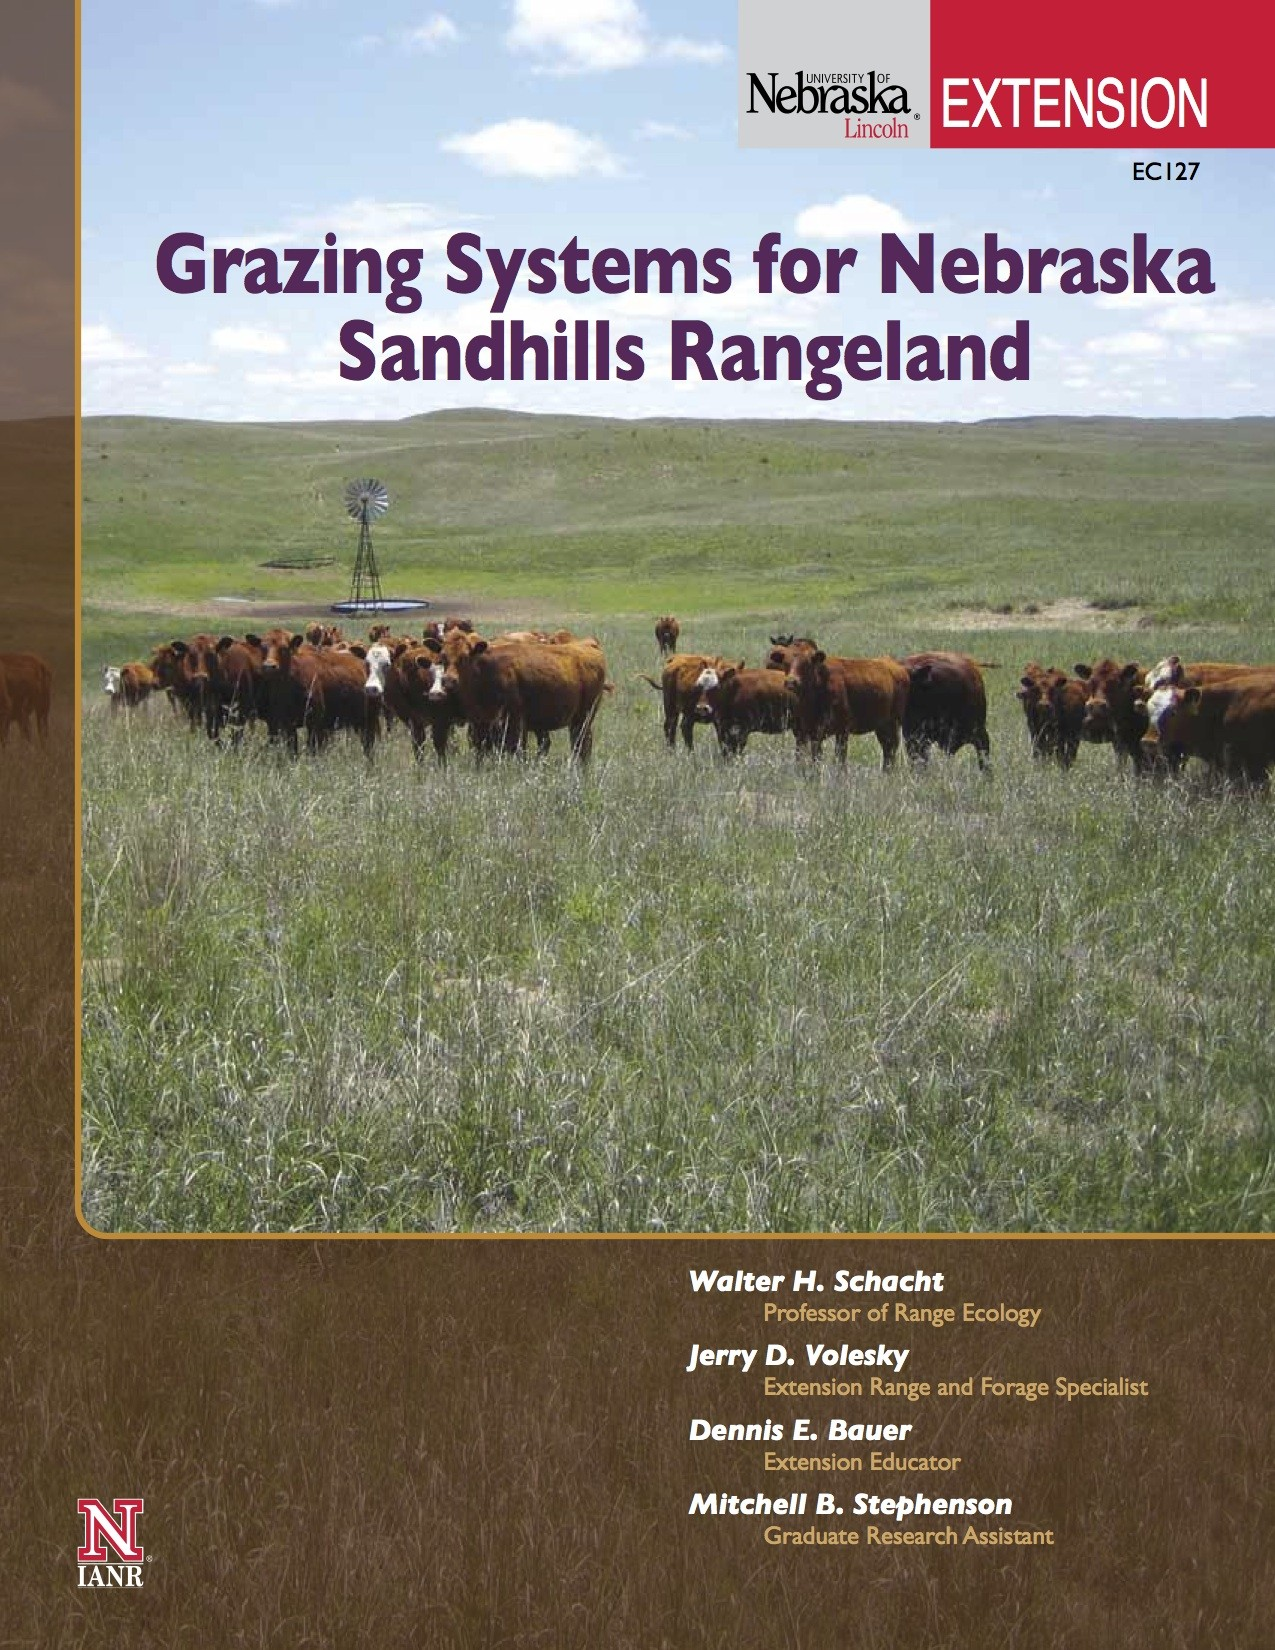 Grazing Systems for Nebraska Sandhills Rangeland